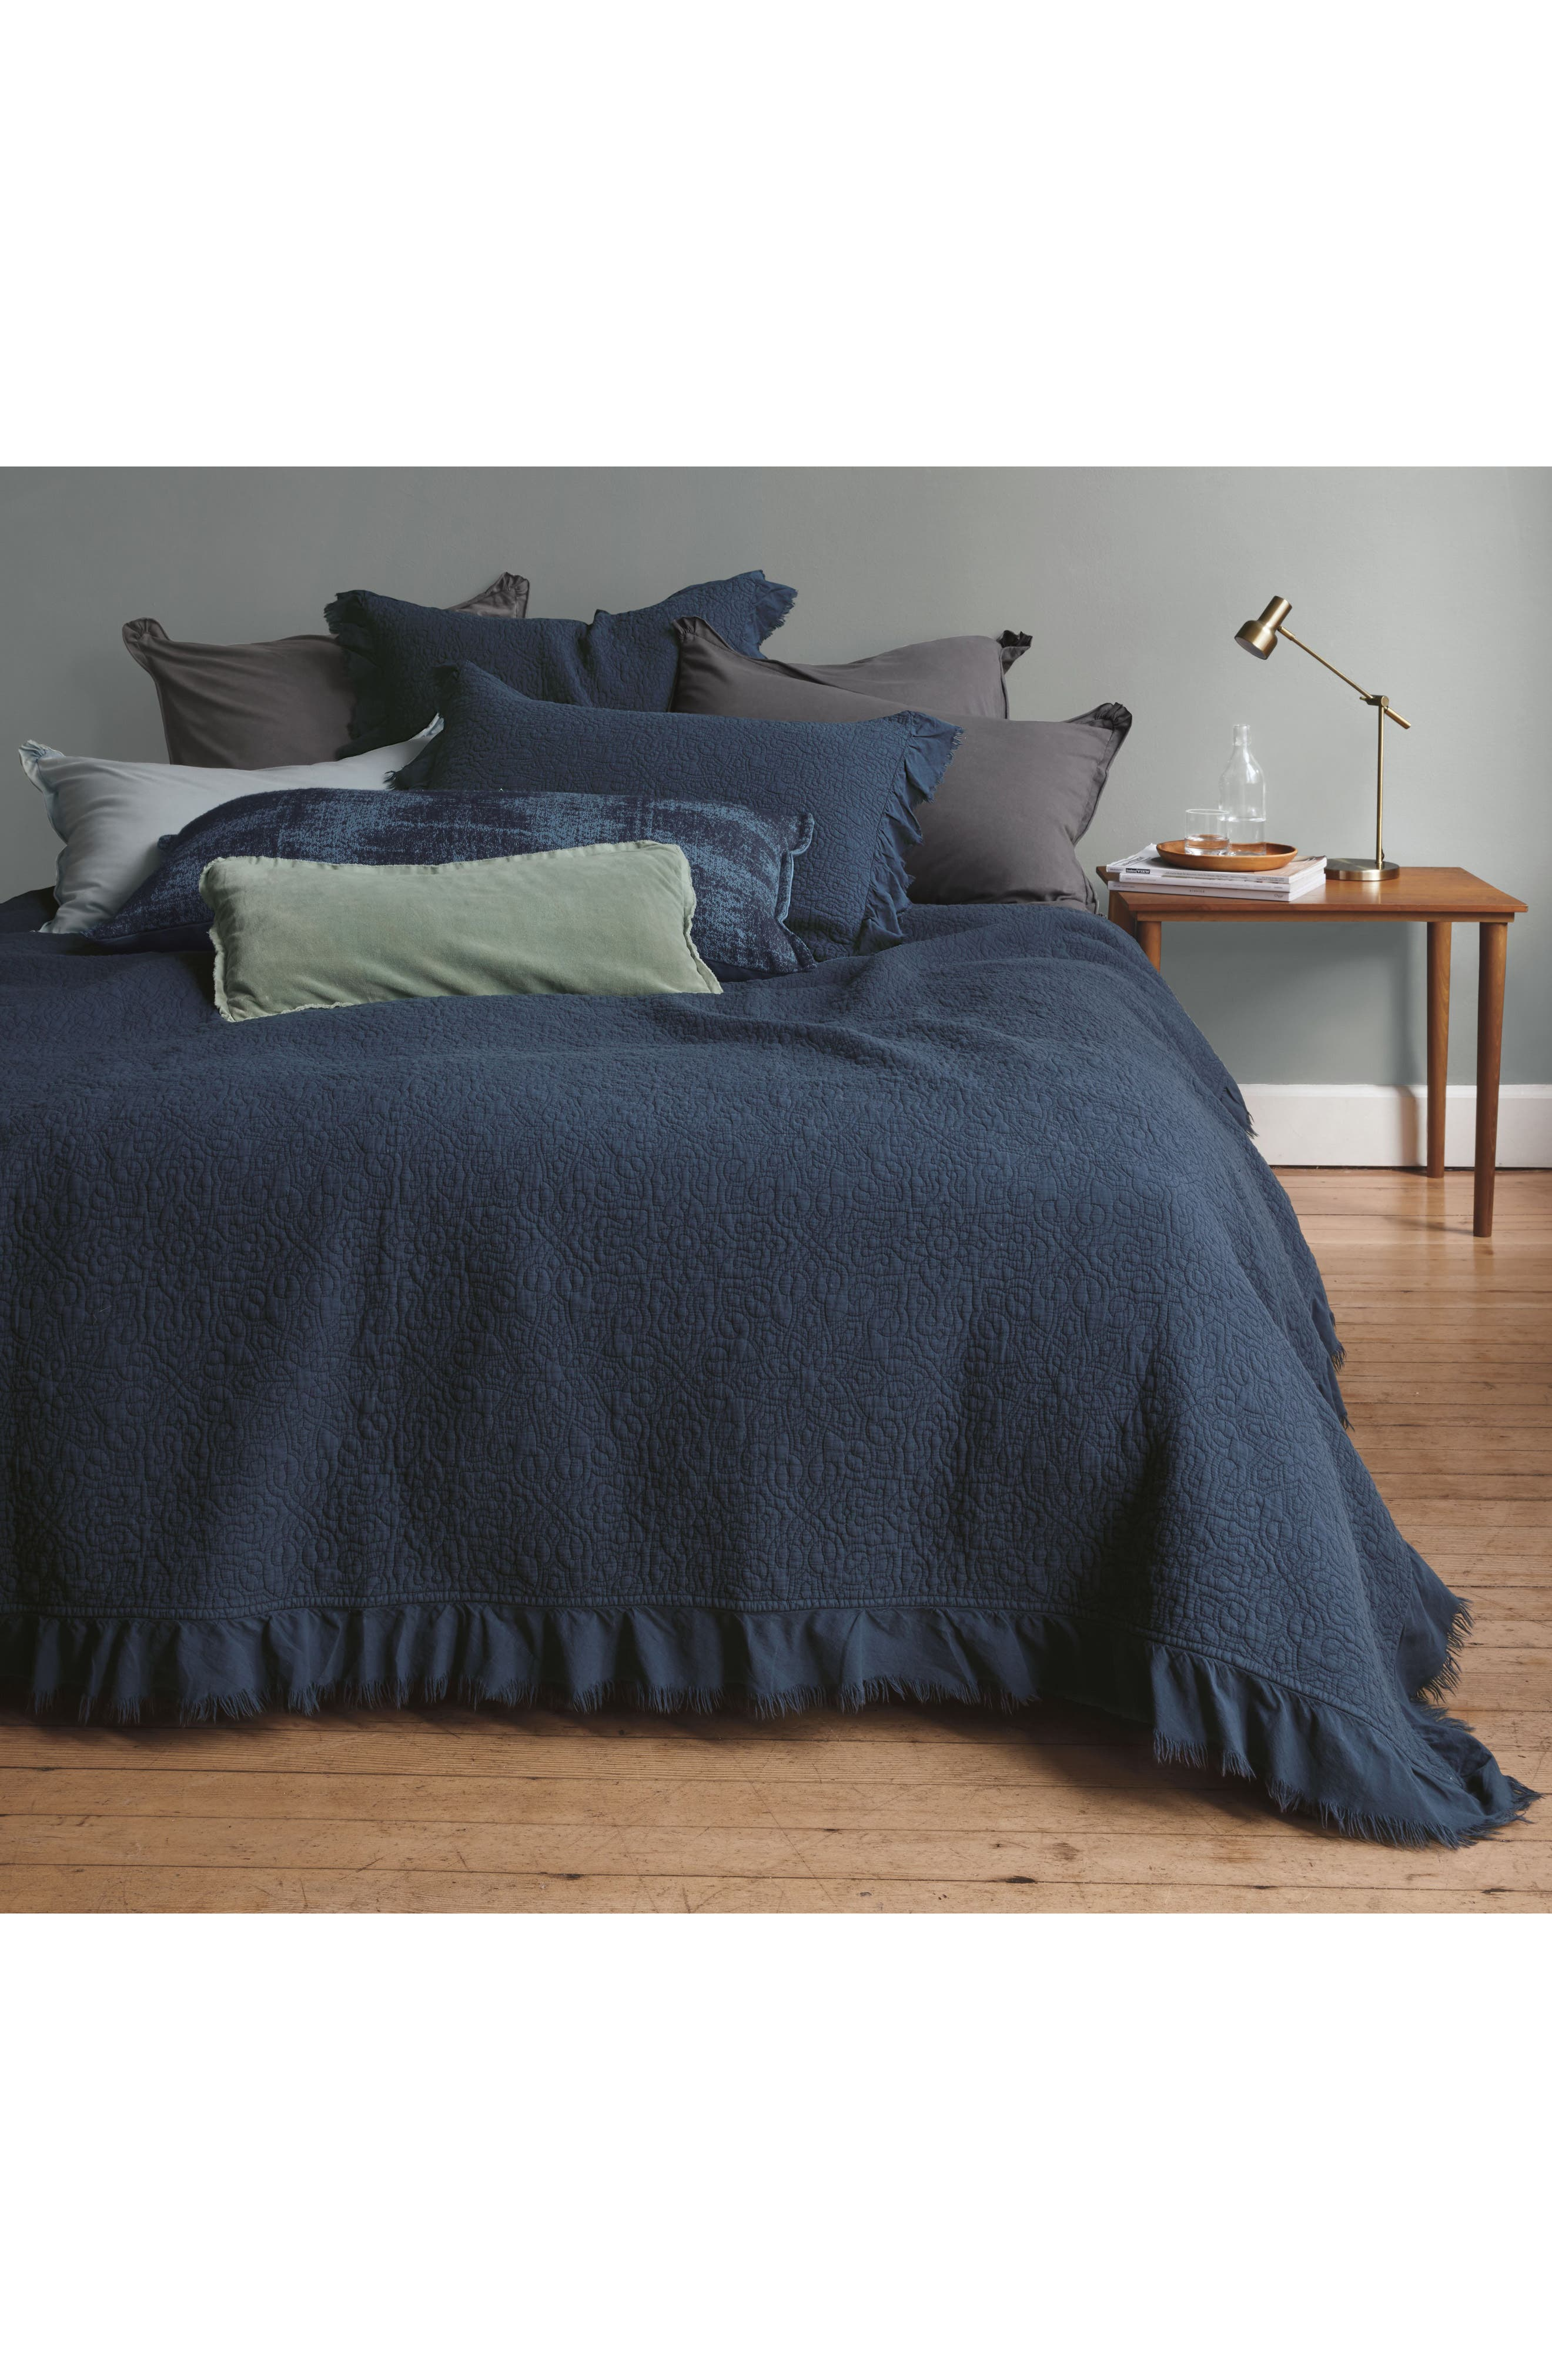 Frayed Edge Stonewash Quilt,                         Main,                         color, Navy Blue